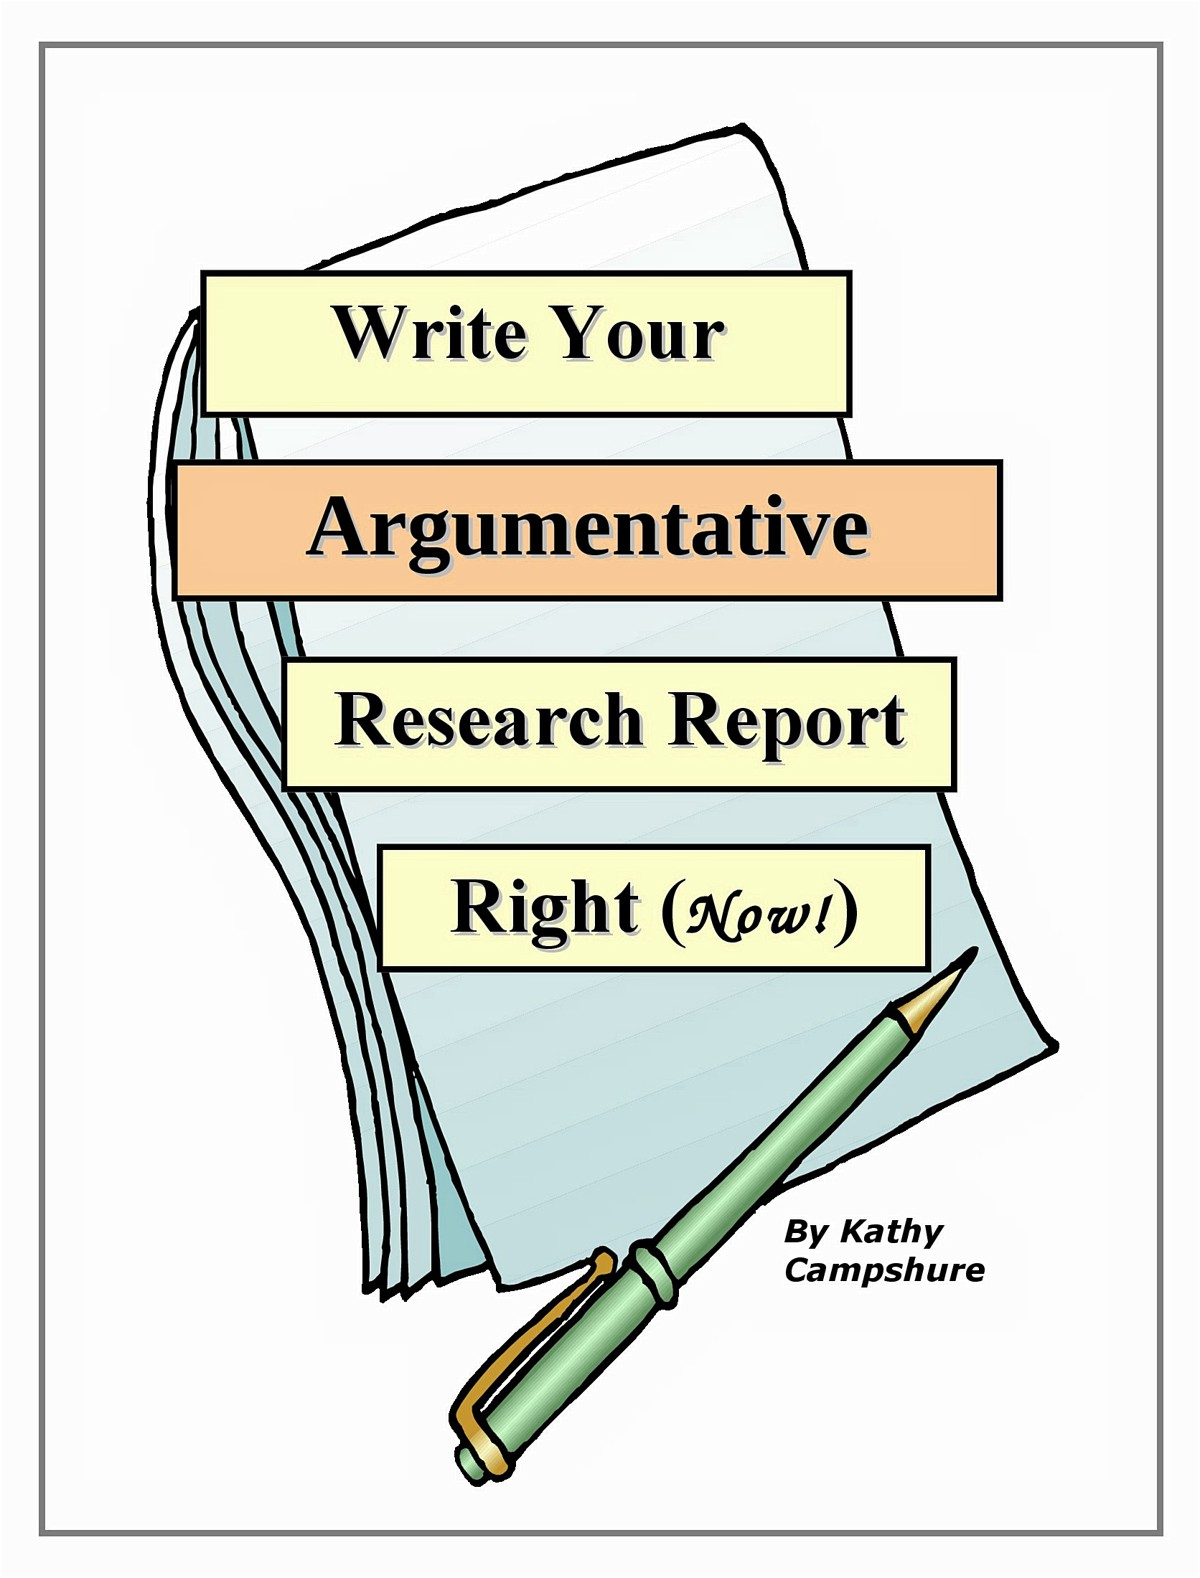 Write Your Argumentative Research Report Right (No